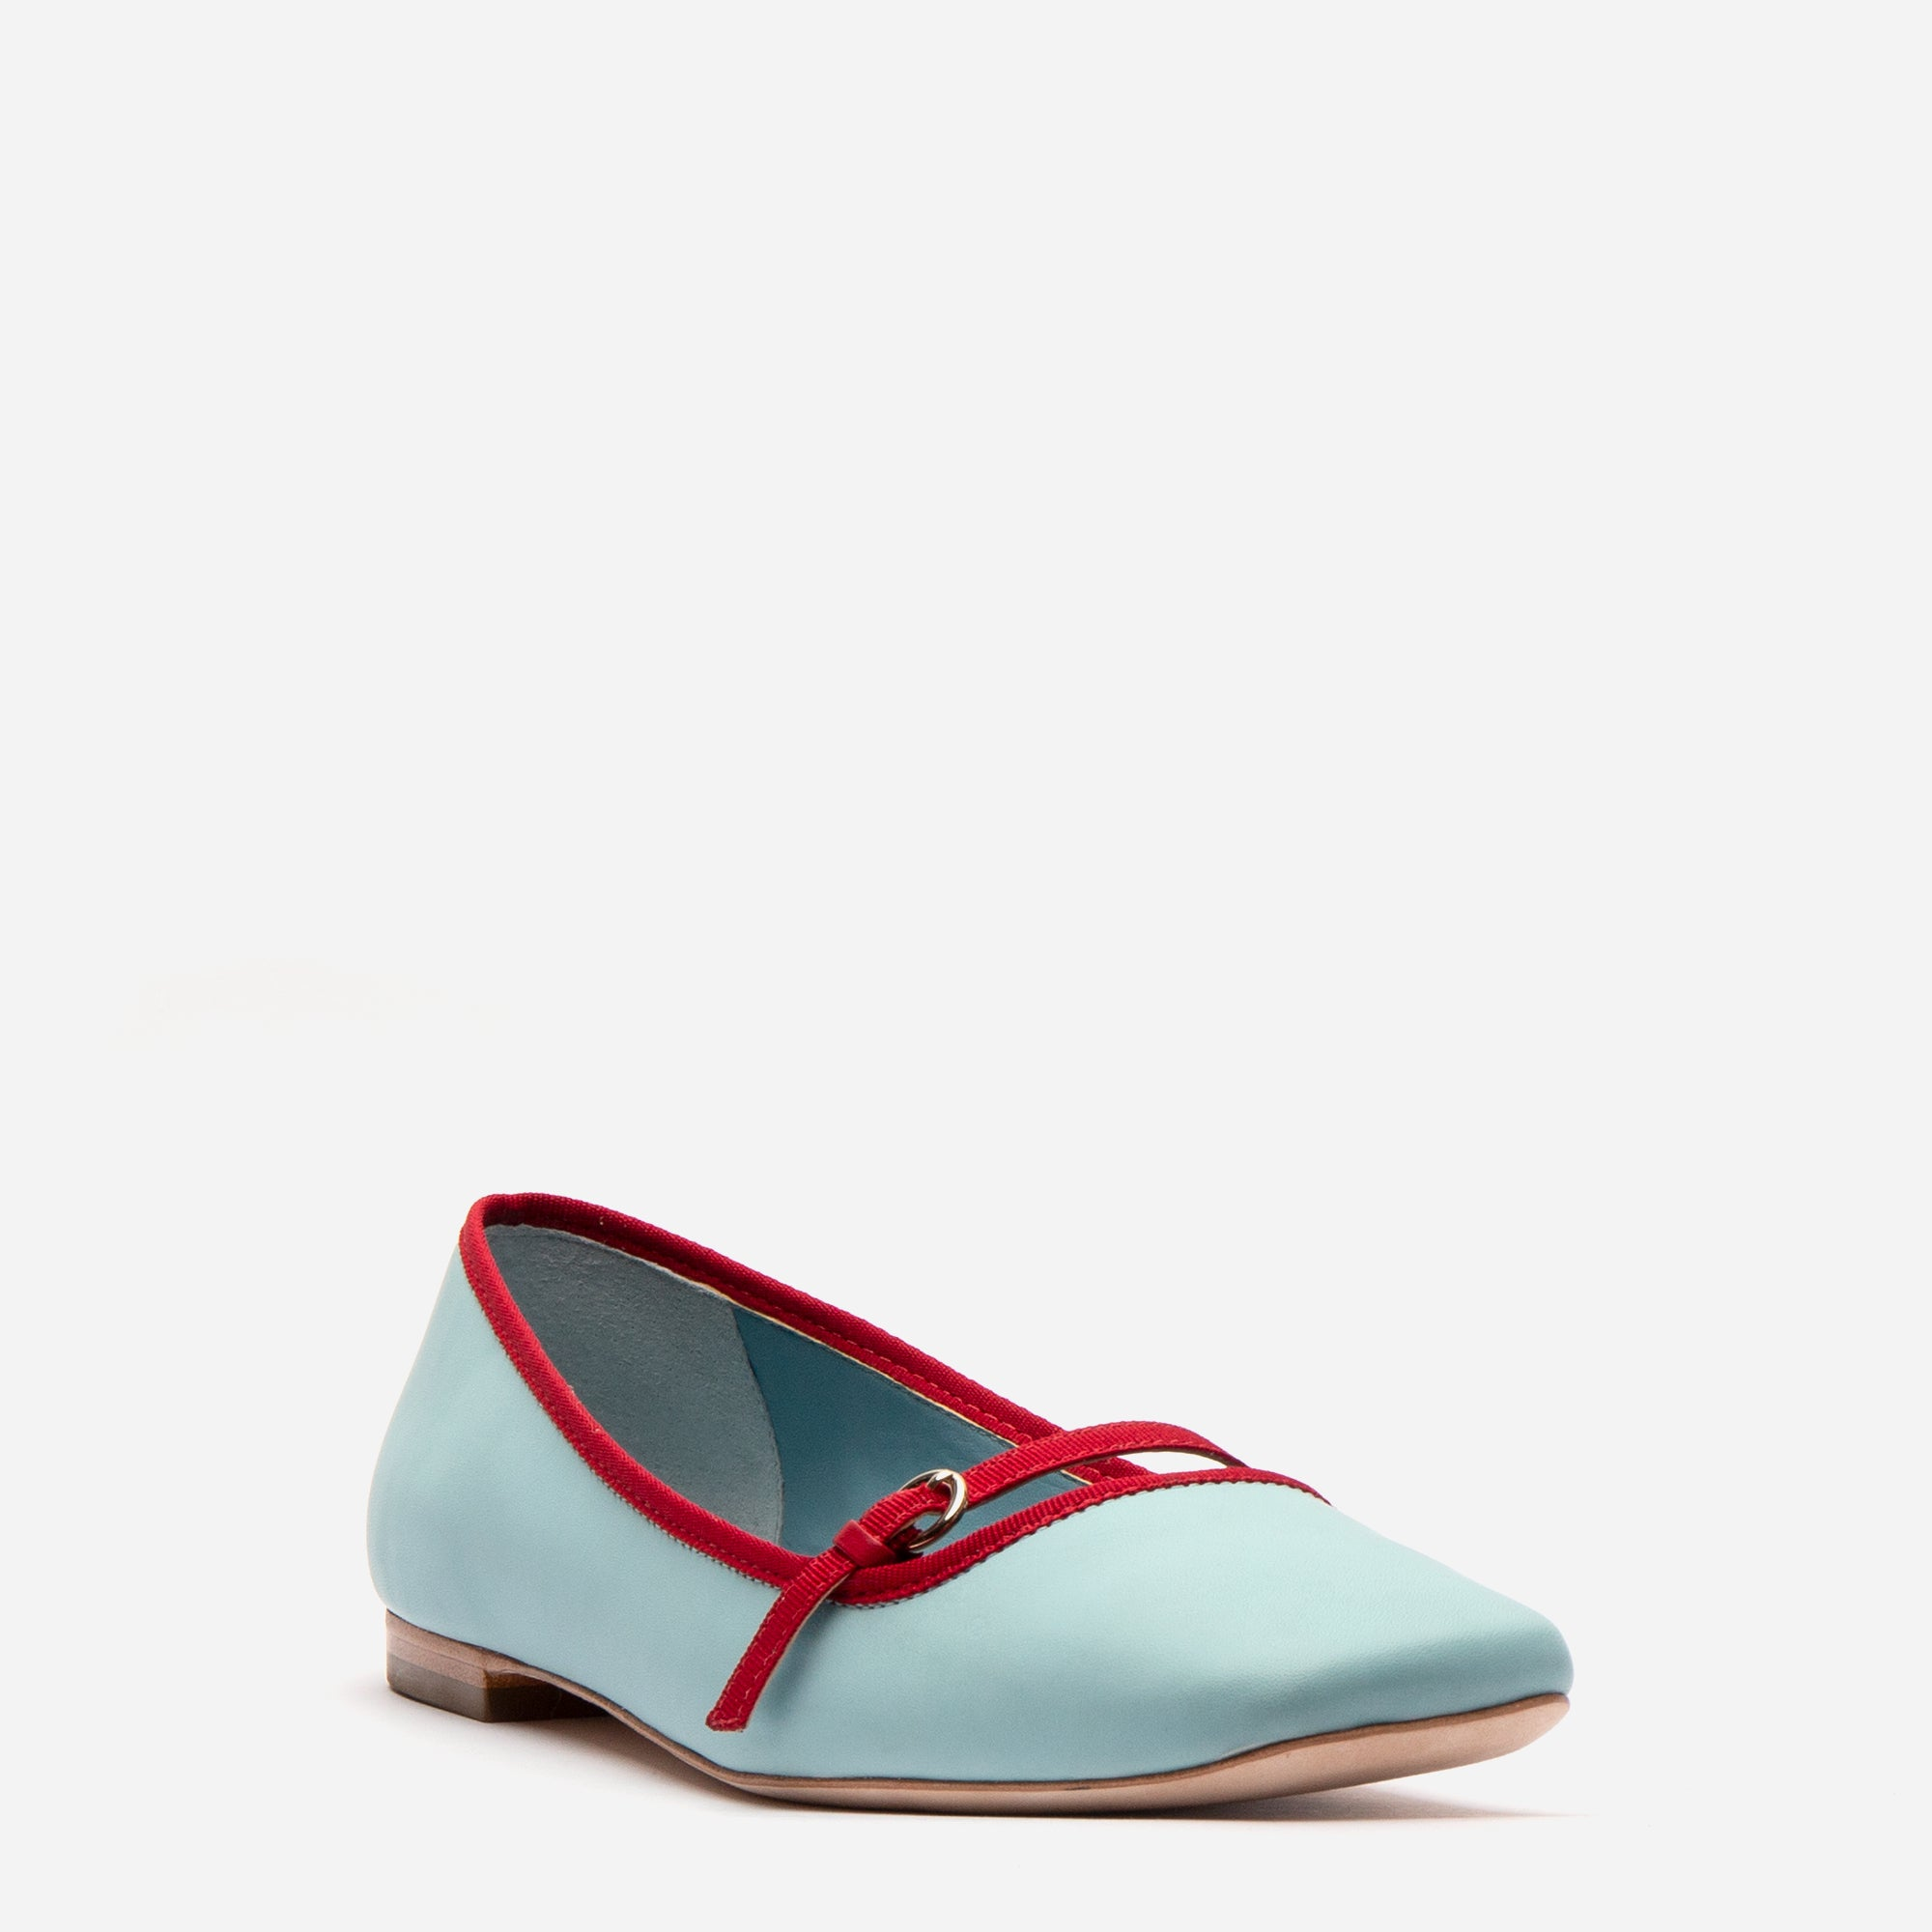 Josie Leather Flats Light Blue Red